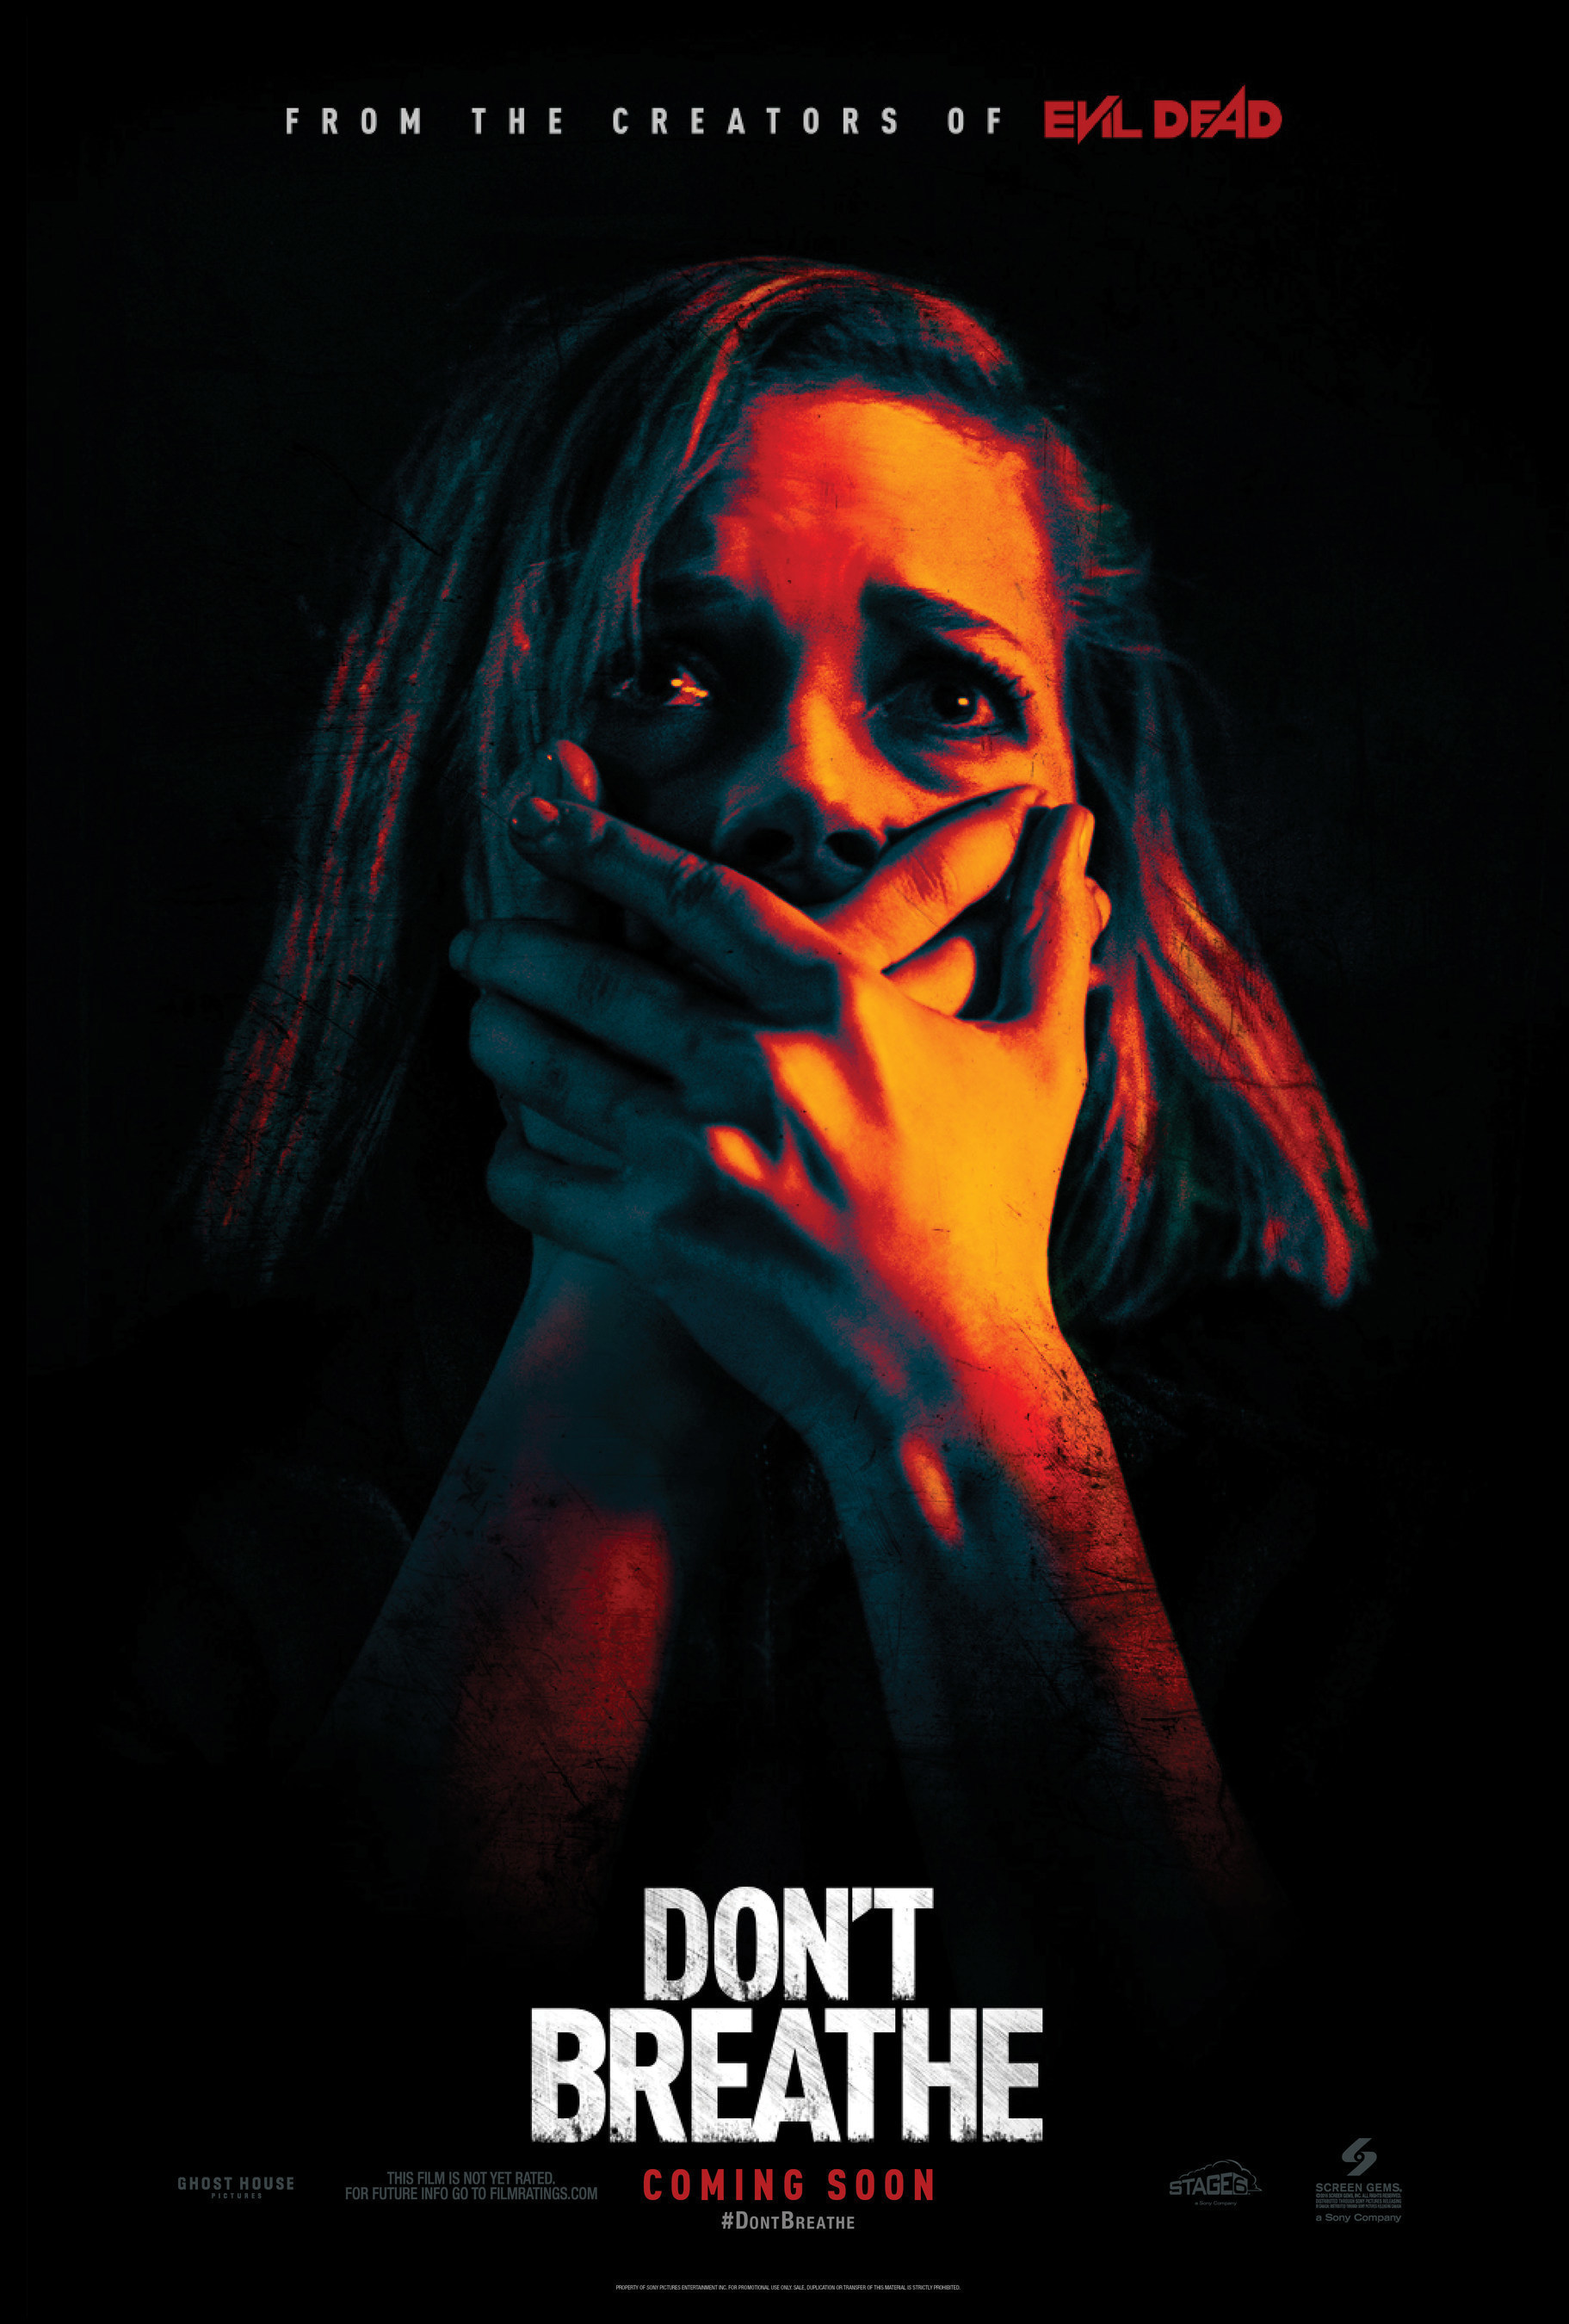 DON'T BREATHE official poster - opening in theaters nationwide August 26, 2016 from Screen Gems.